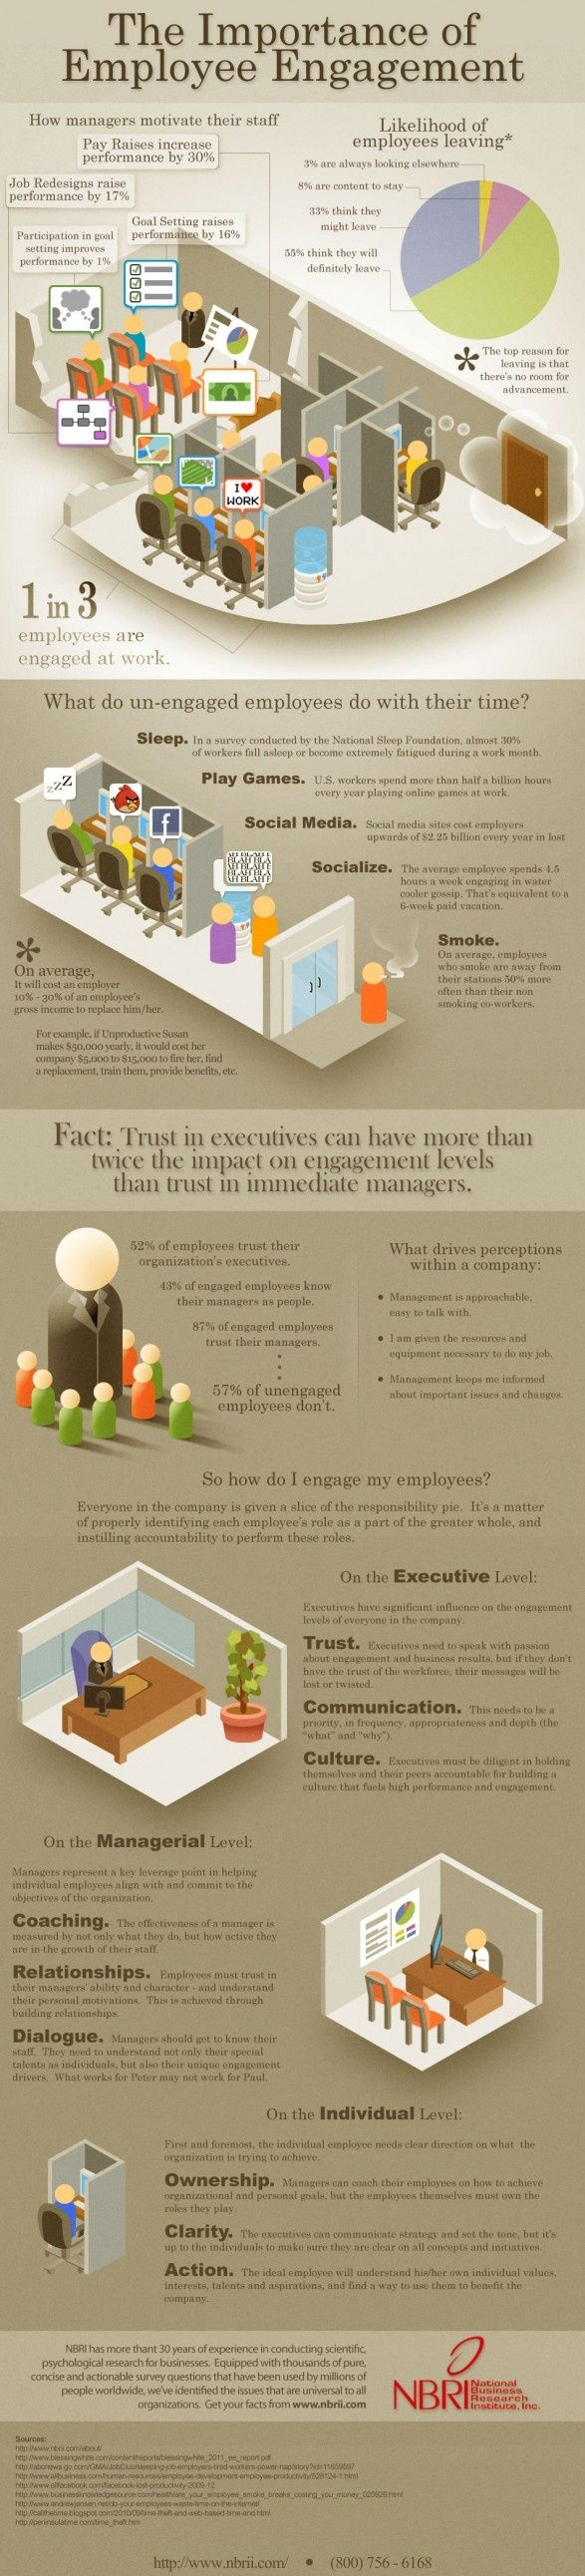 Recreation managers can use rewards to improve employee motivation, retention